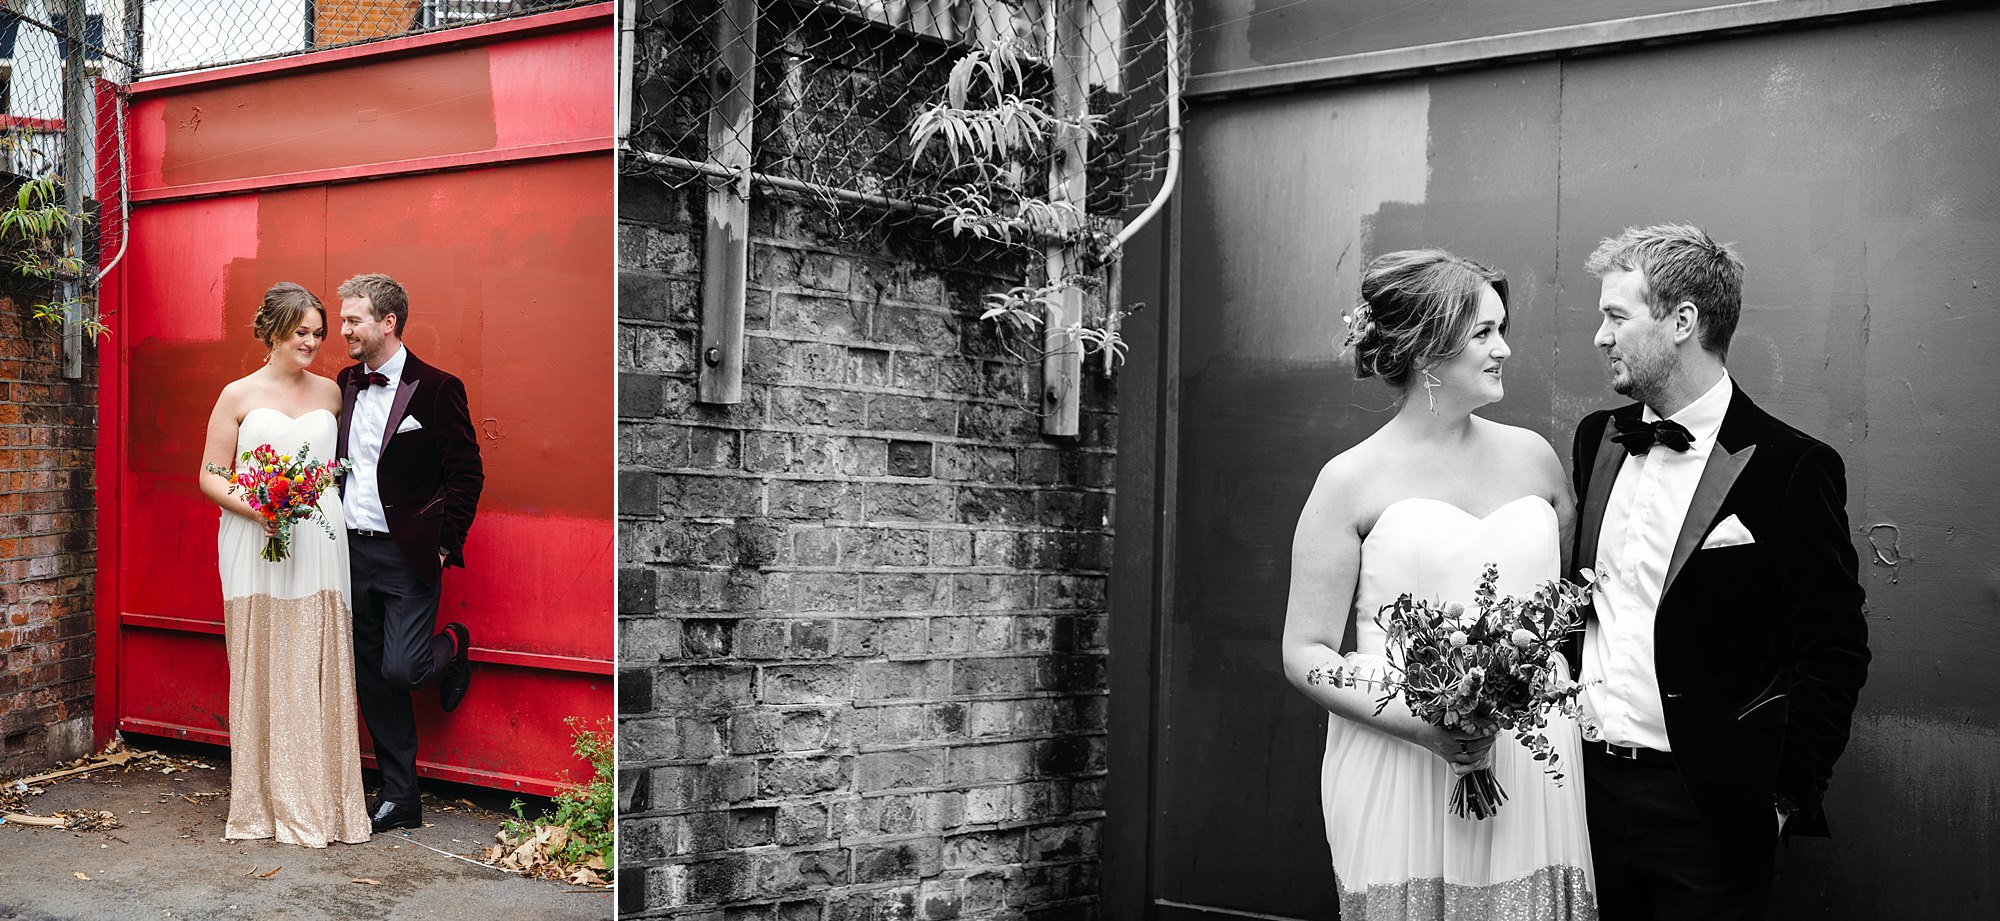 Fun London Wedding bride and groom urban portrait